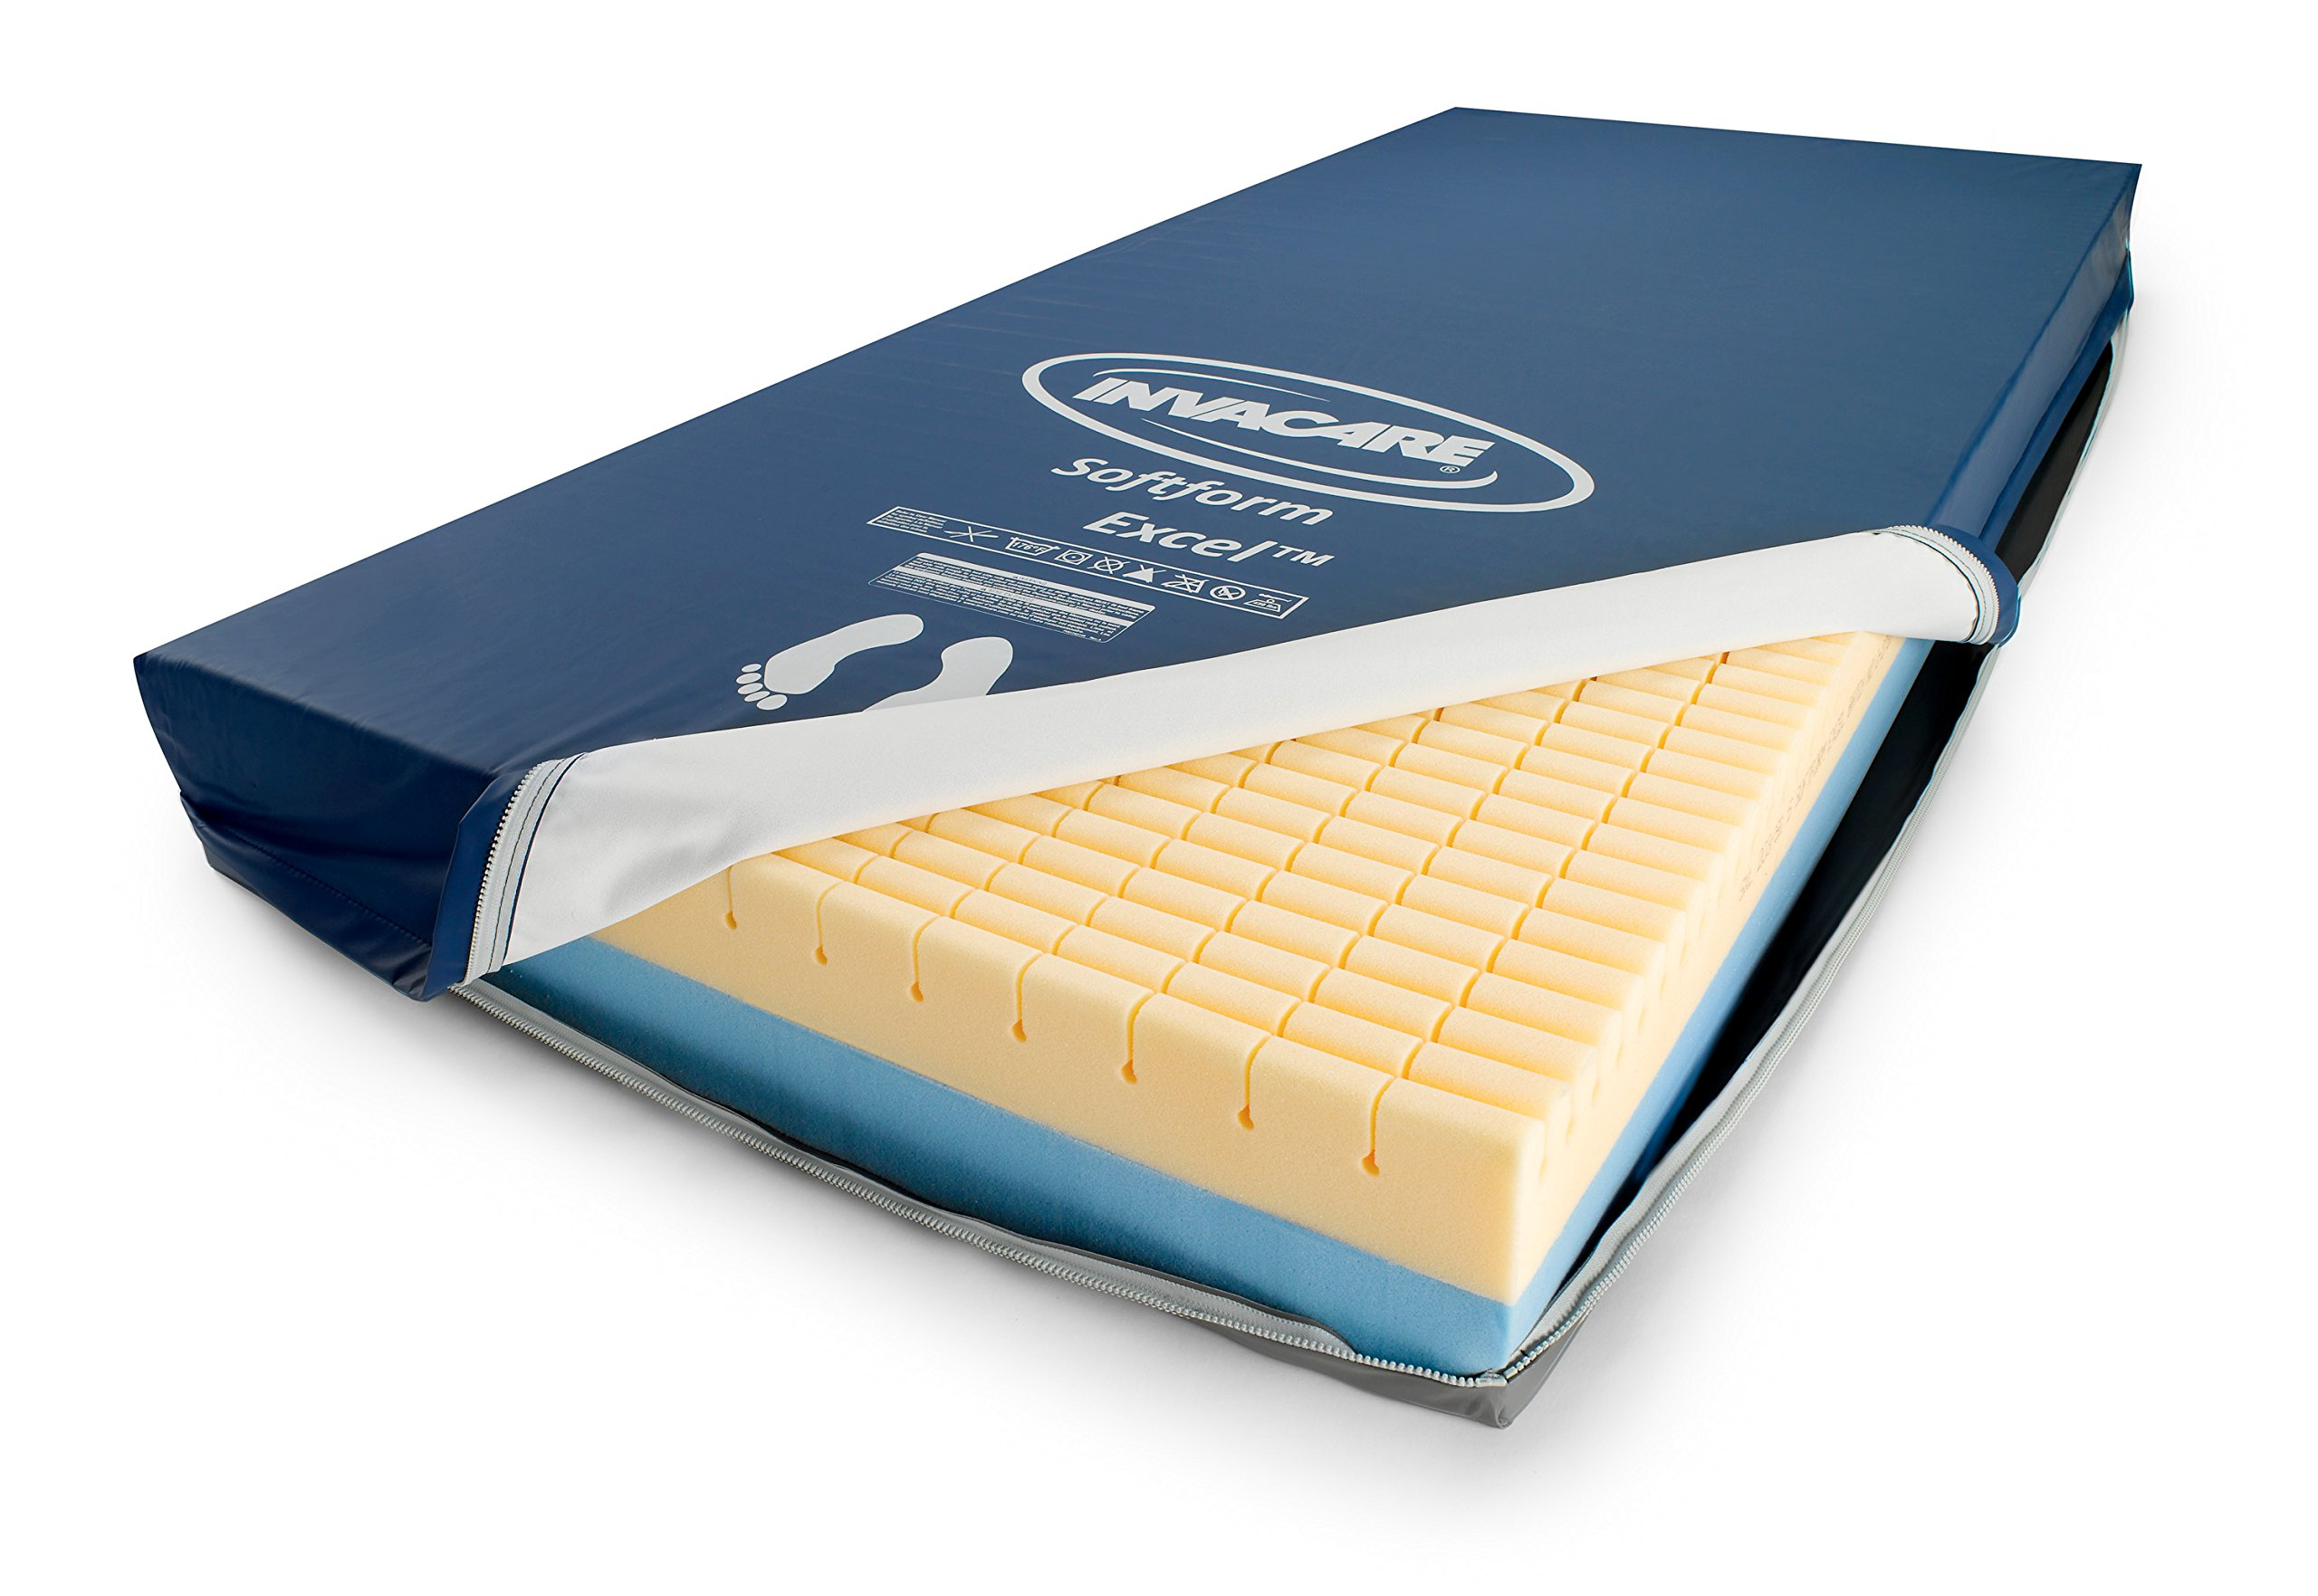 Invacare Softform Excel Mattress, 80 x 36 x 6 inches, countoured Foam Layer, IXL1080 by Invacare (Image #2)